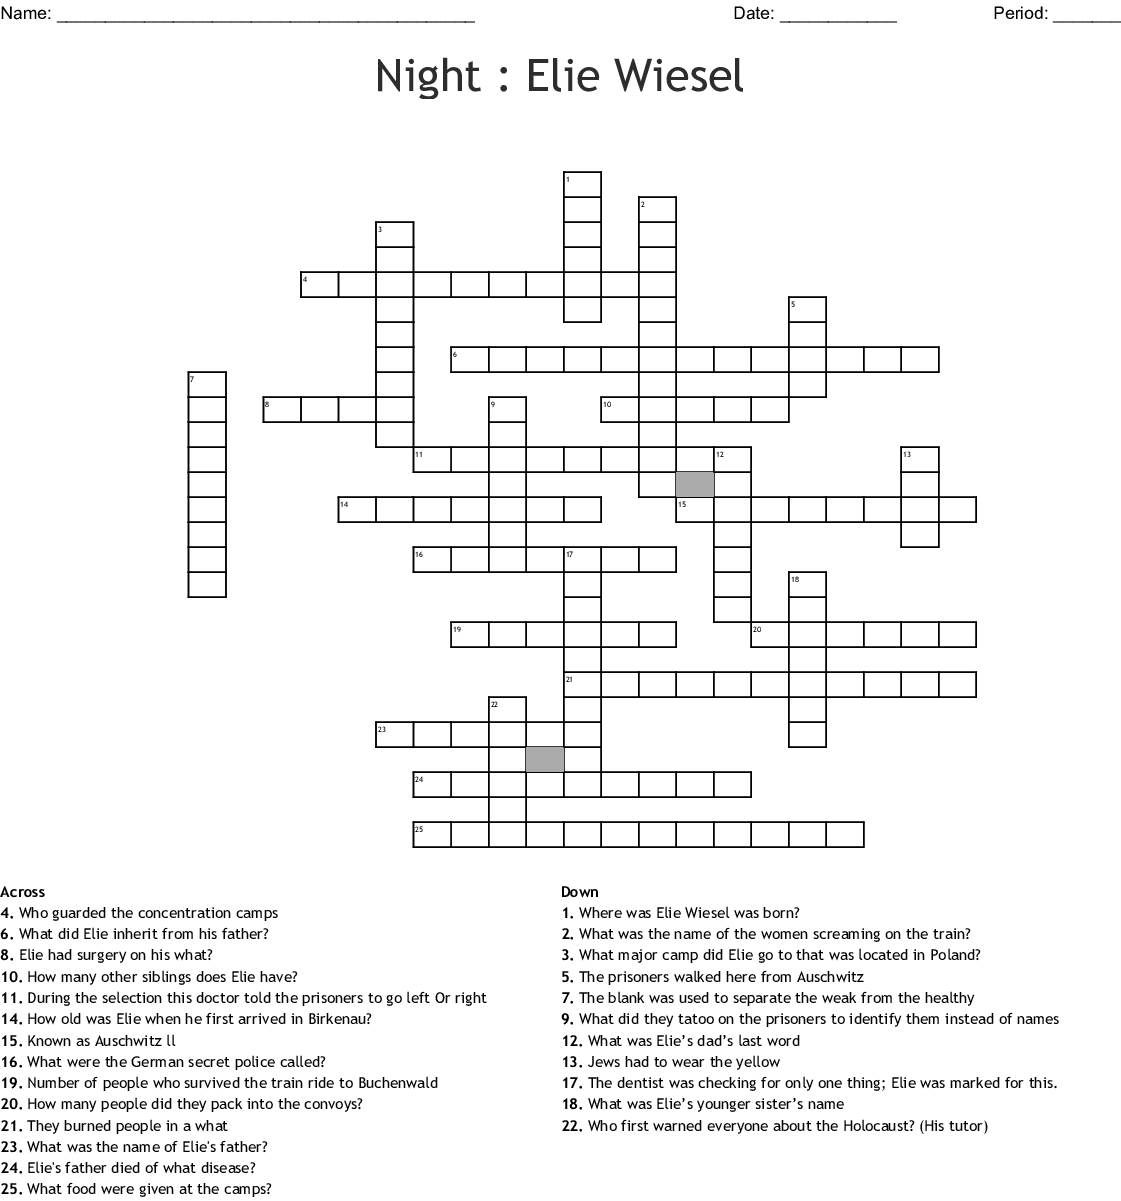 Night Elie Wiesel Crossword